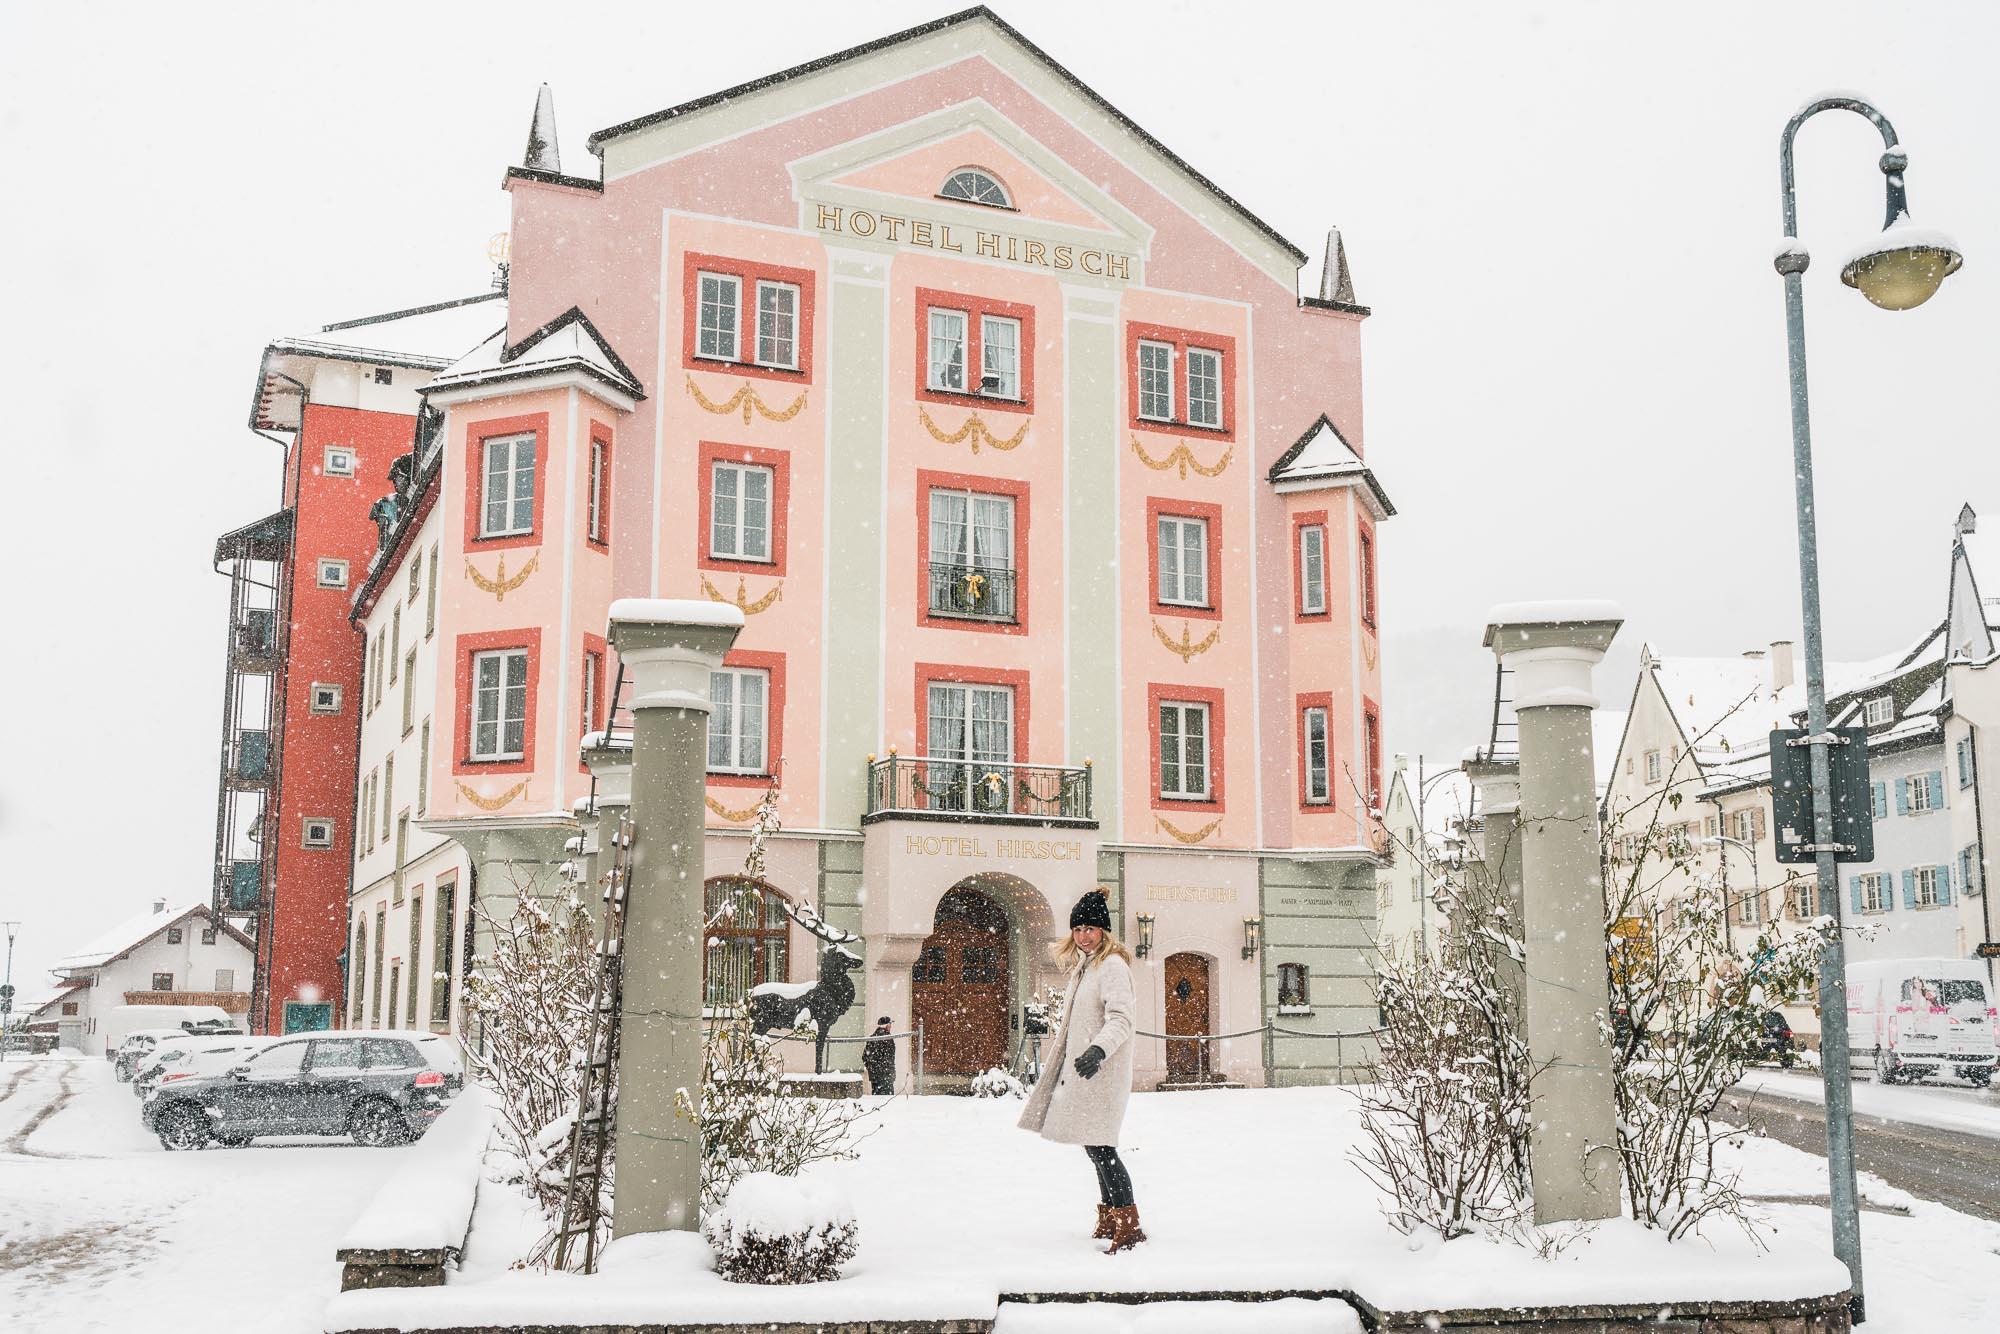 Hotel hirsch art nouveau pink hotel in downtown Fussen near Neuschwanstein Castle in Bavaria Germany